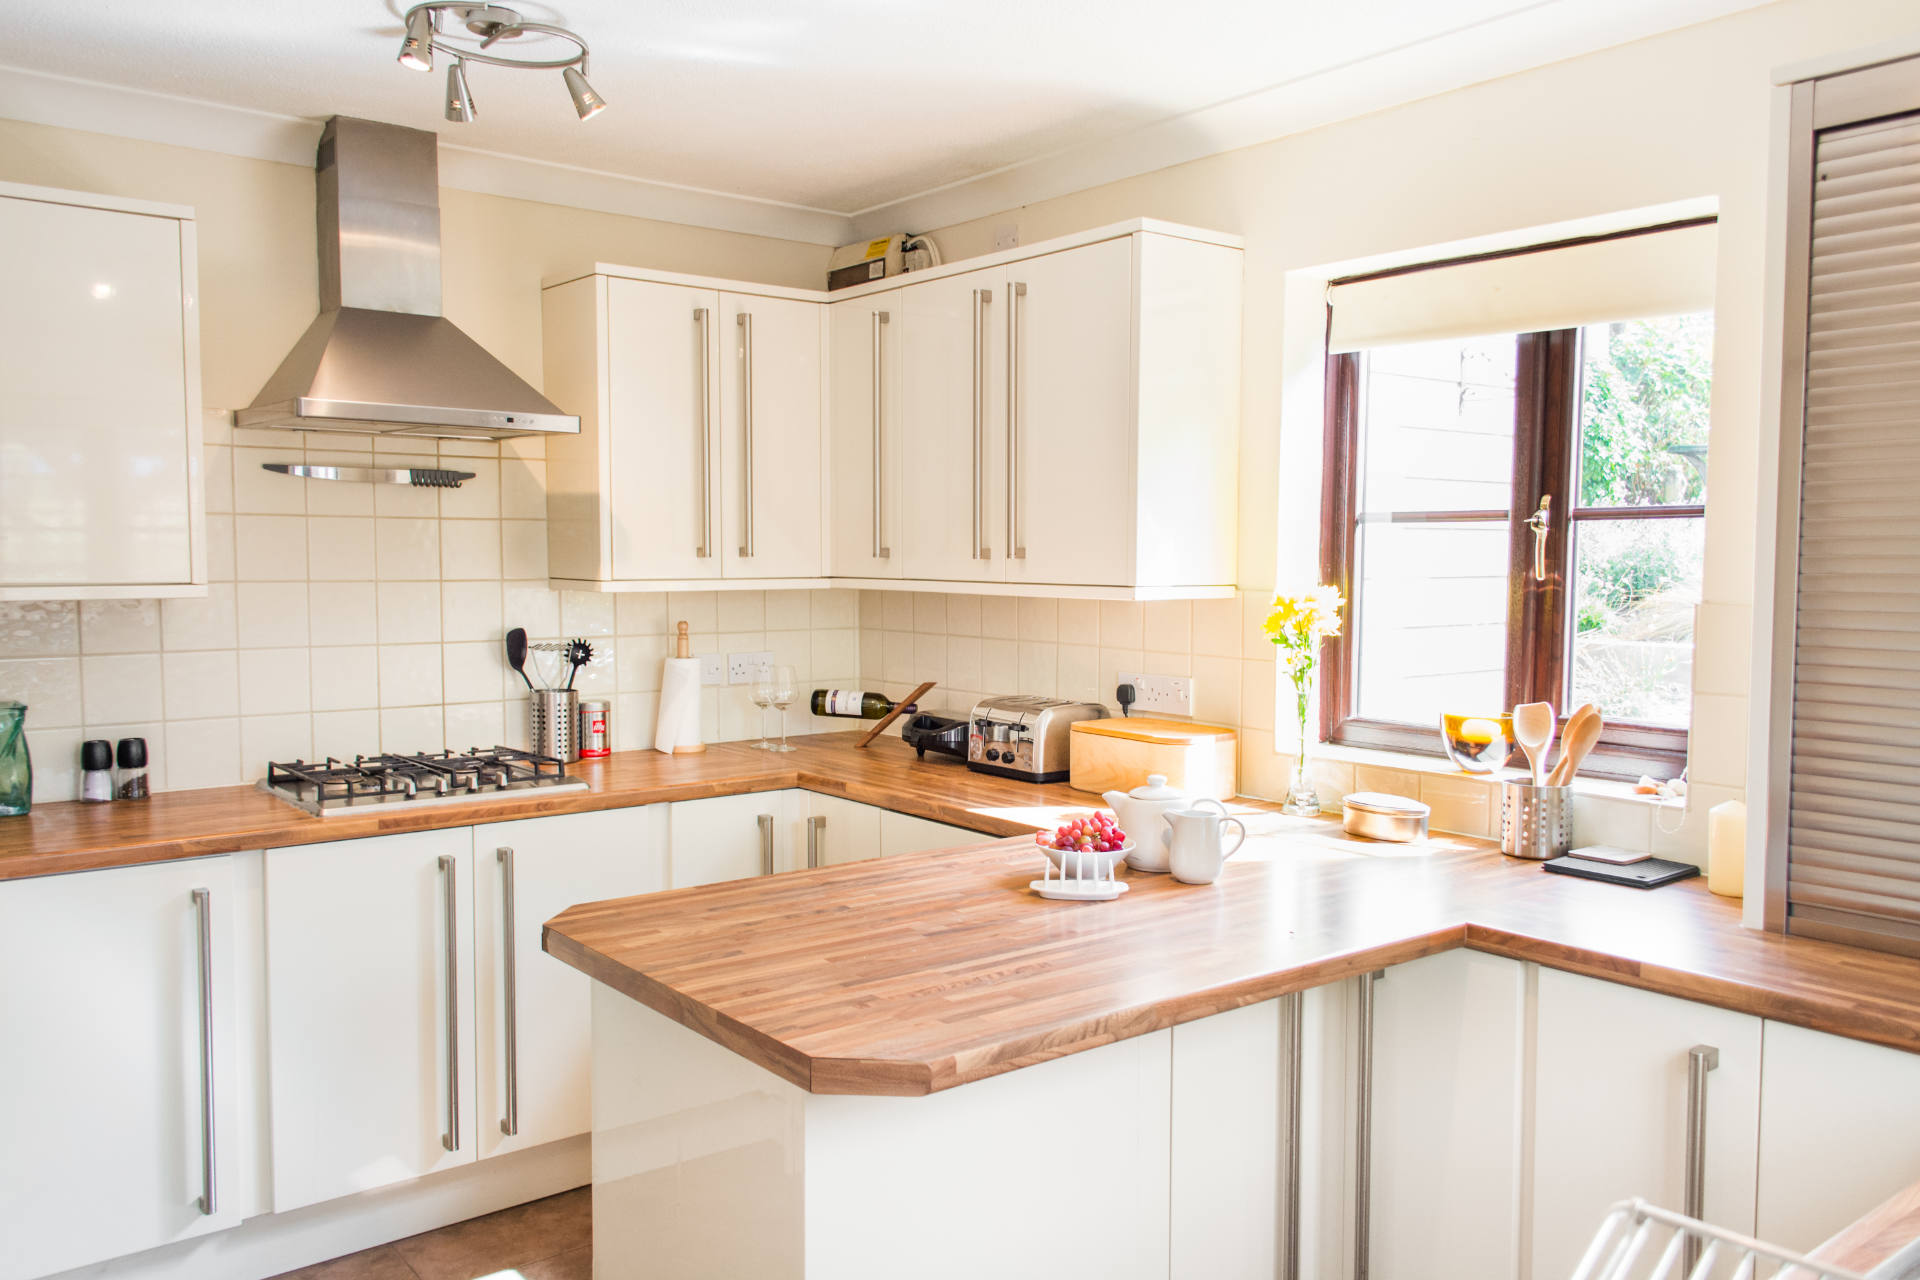 Holiday home kitchen with breakfast bar.